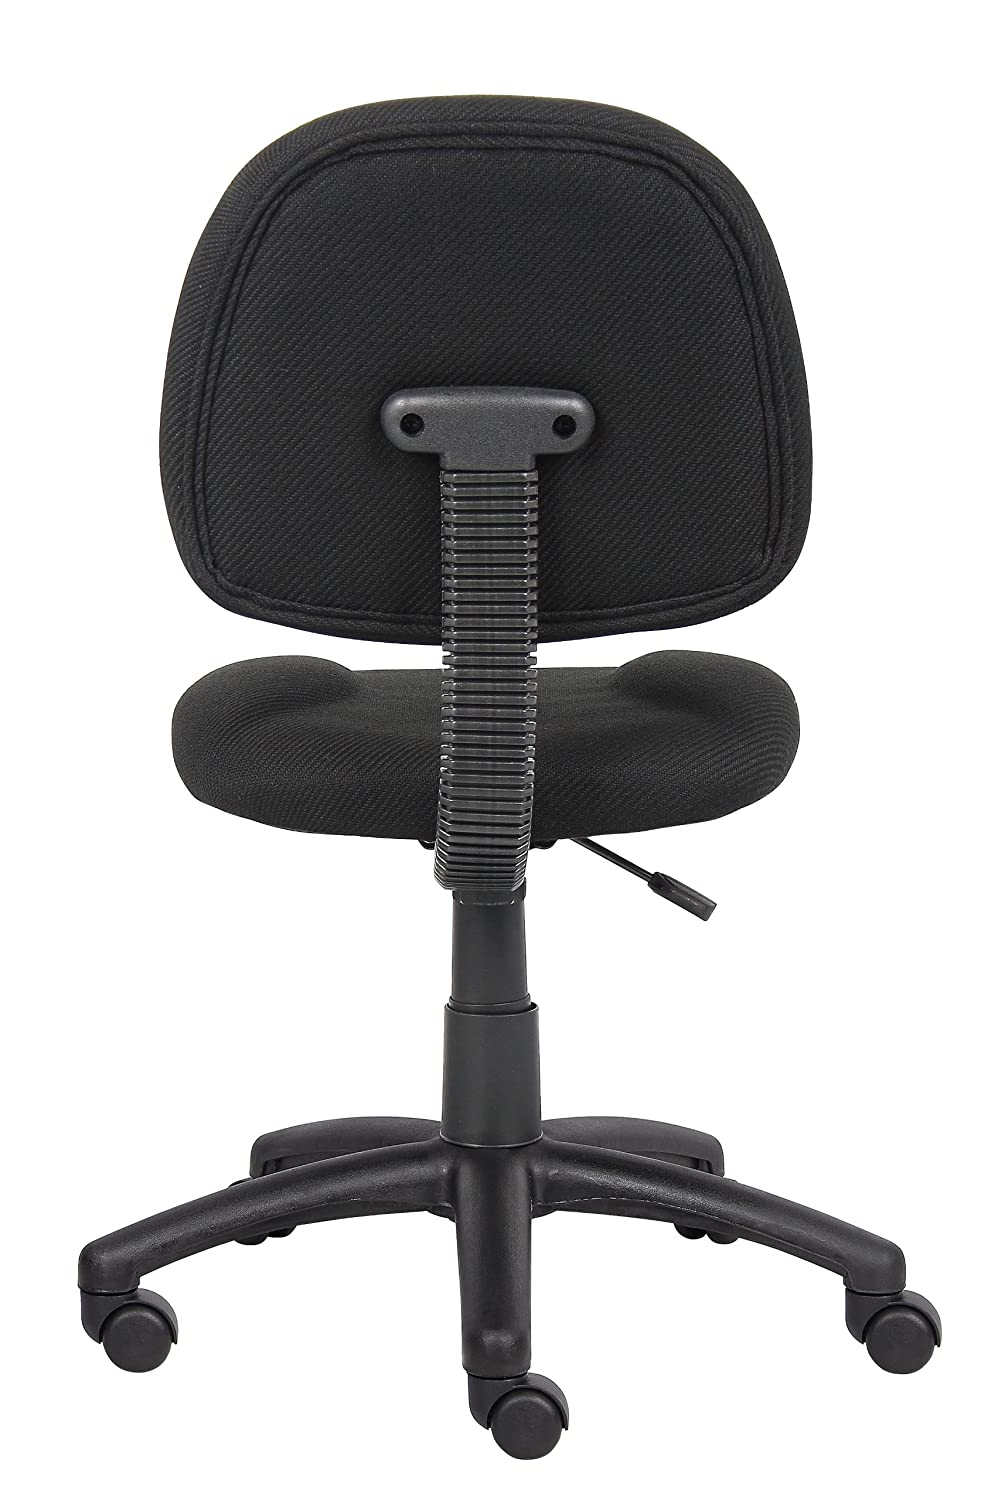 Uncategorized office desk chair casters - Office Chair Back View Amazon Com Boss Office Products B315 Bk Perfect Posture Delux Fabric